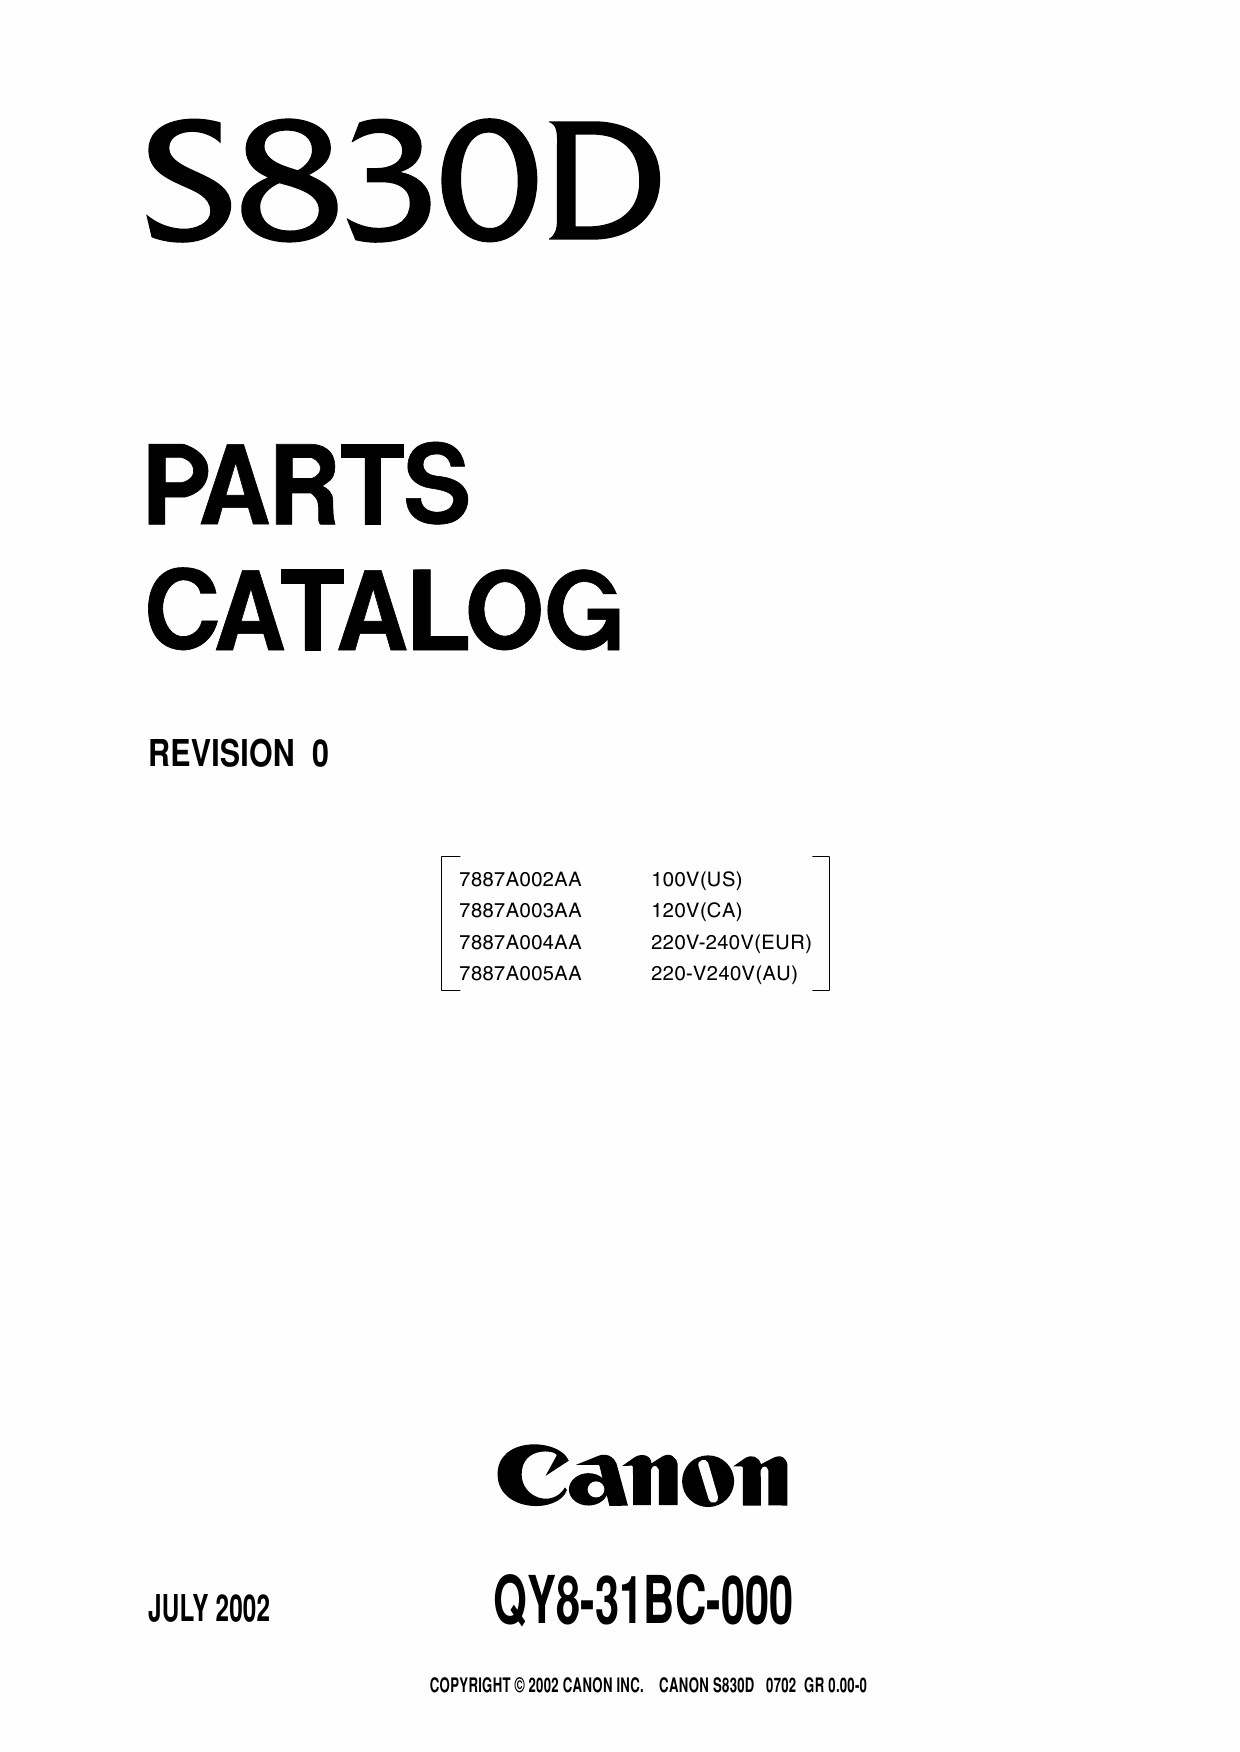 Canon PIXUS S830D Parts Catalog Manual